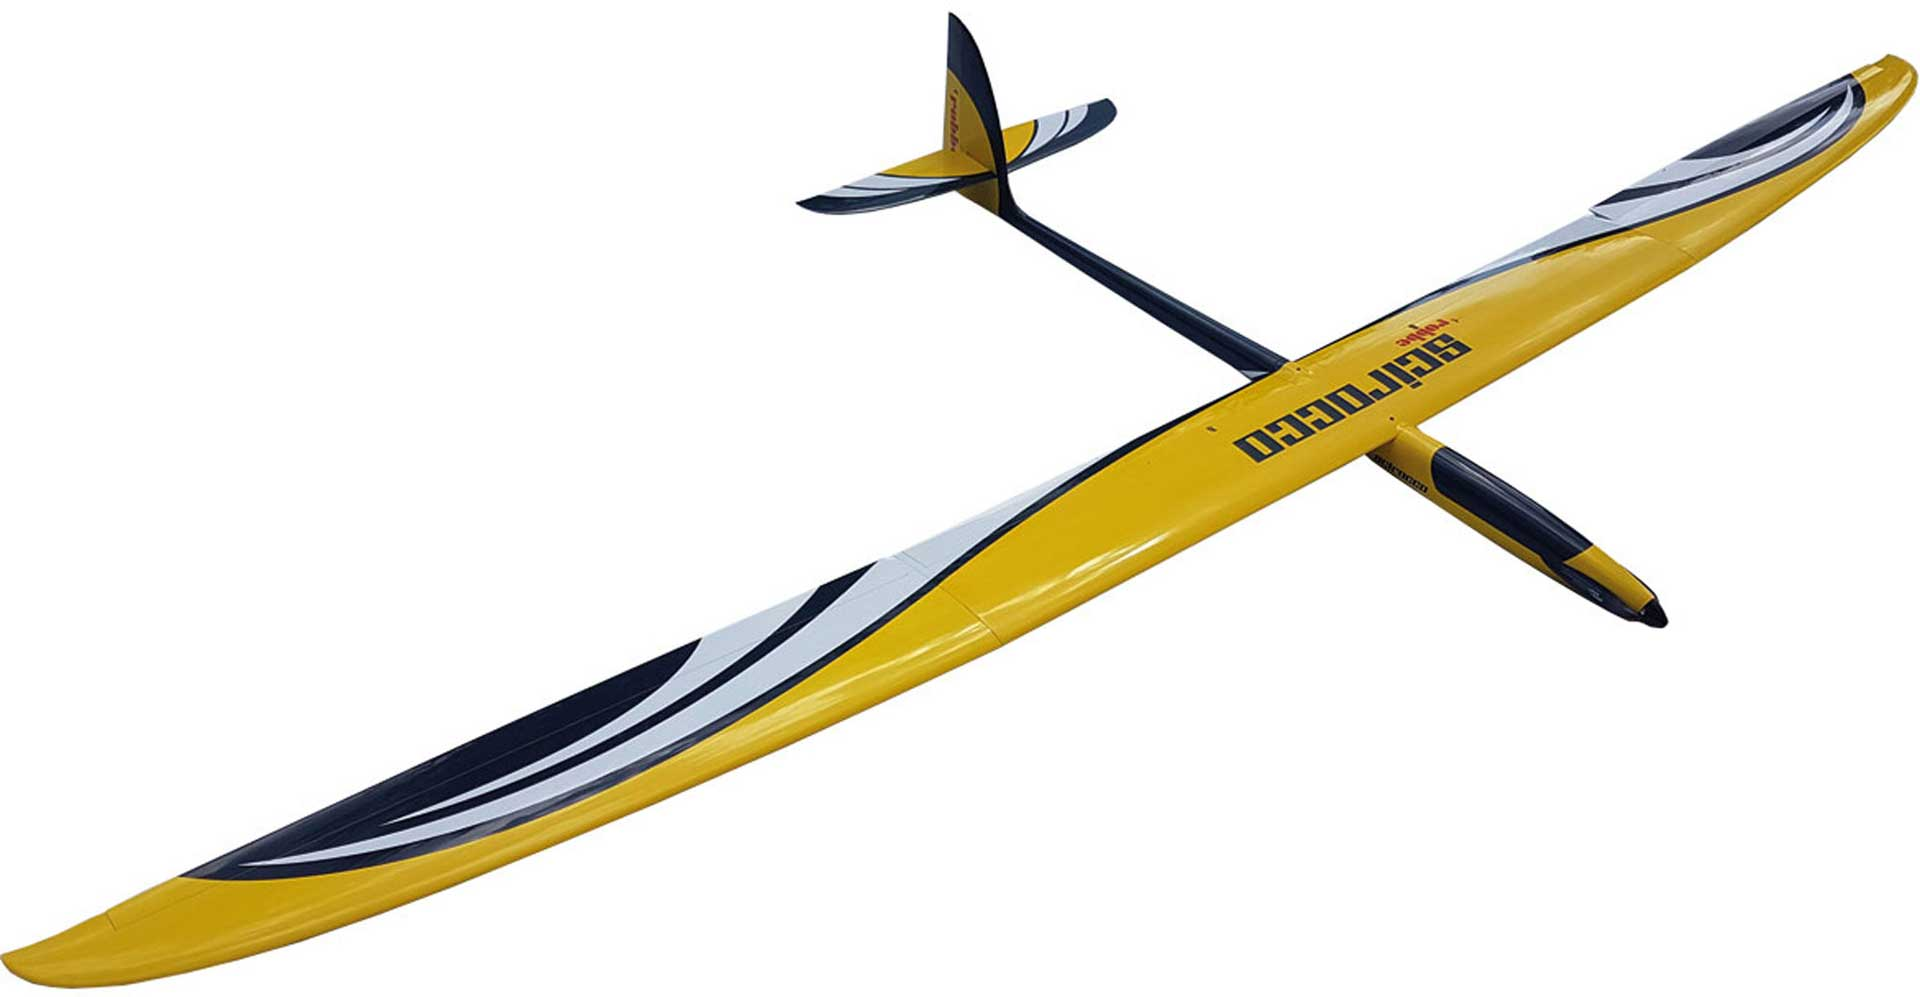 ROBBE SCIROCCO 4,0 M ARF FULL-GRP HIGH-PERFORM ANCE SAILPLANE